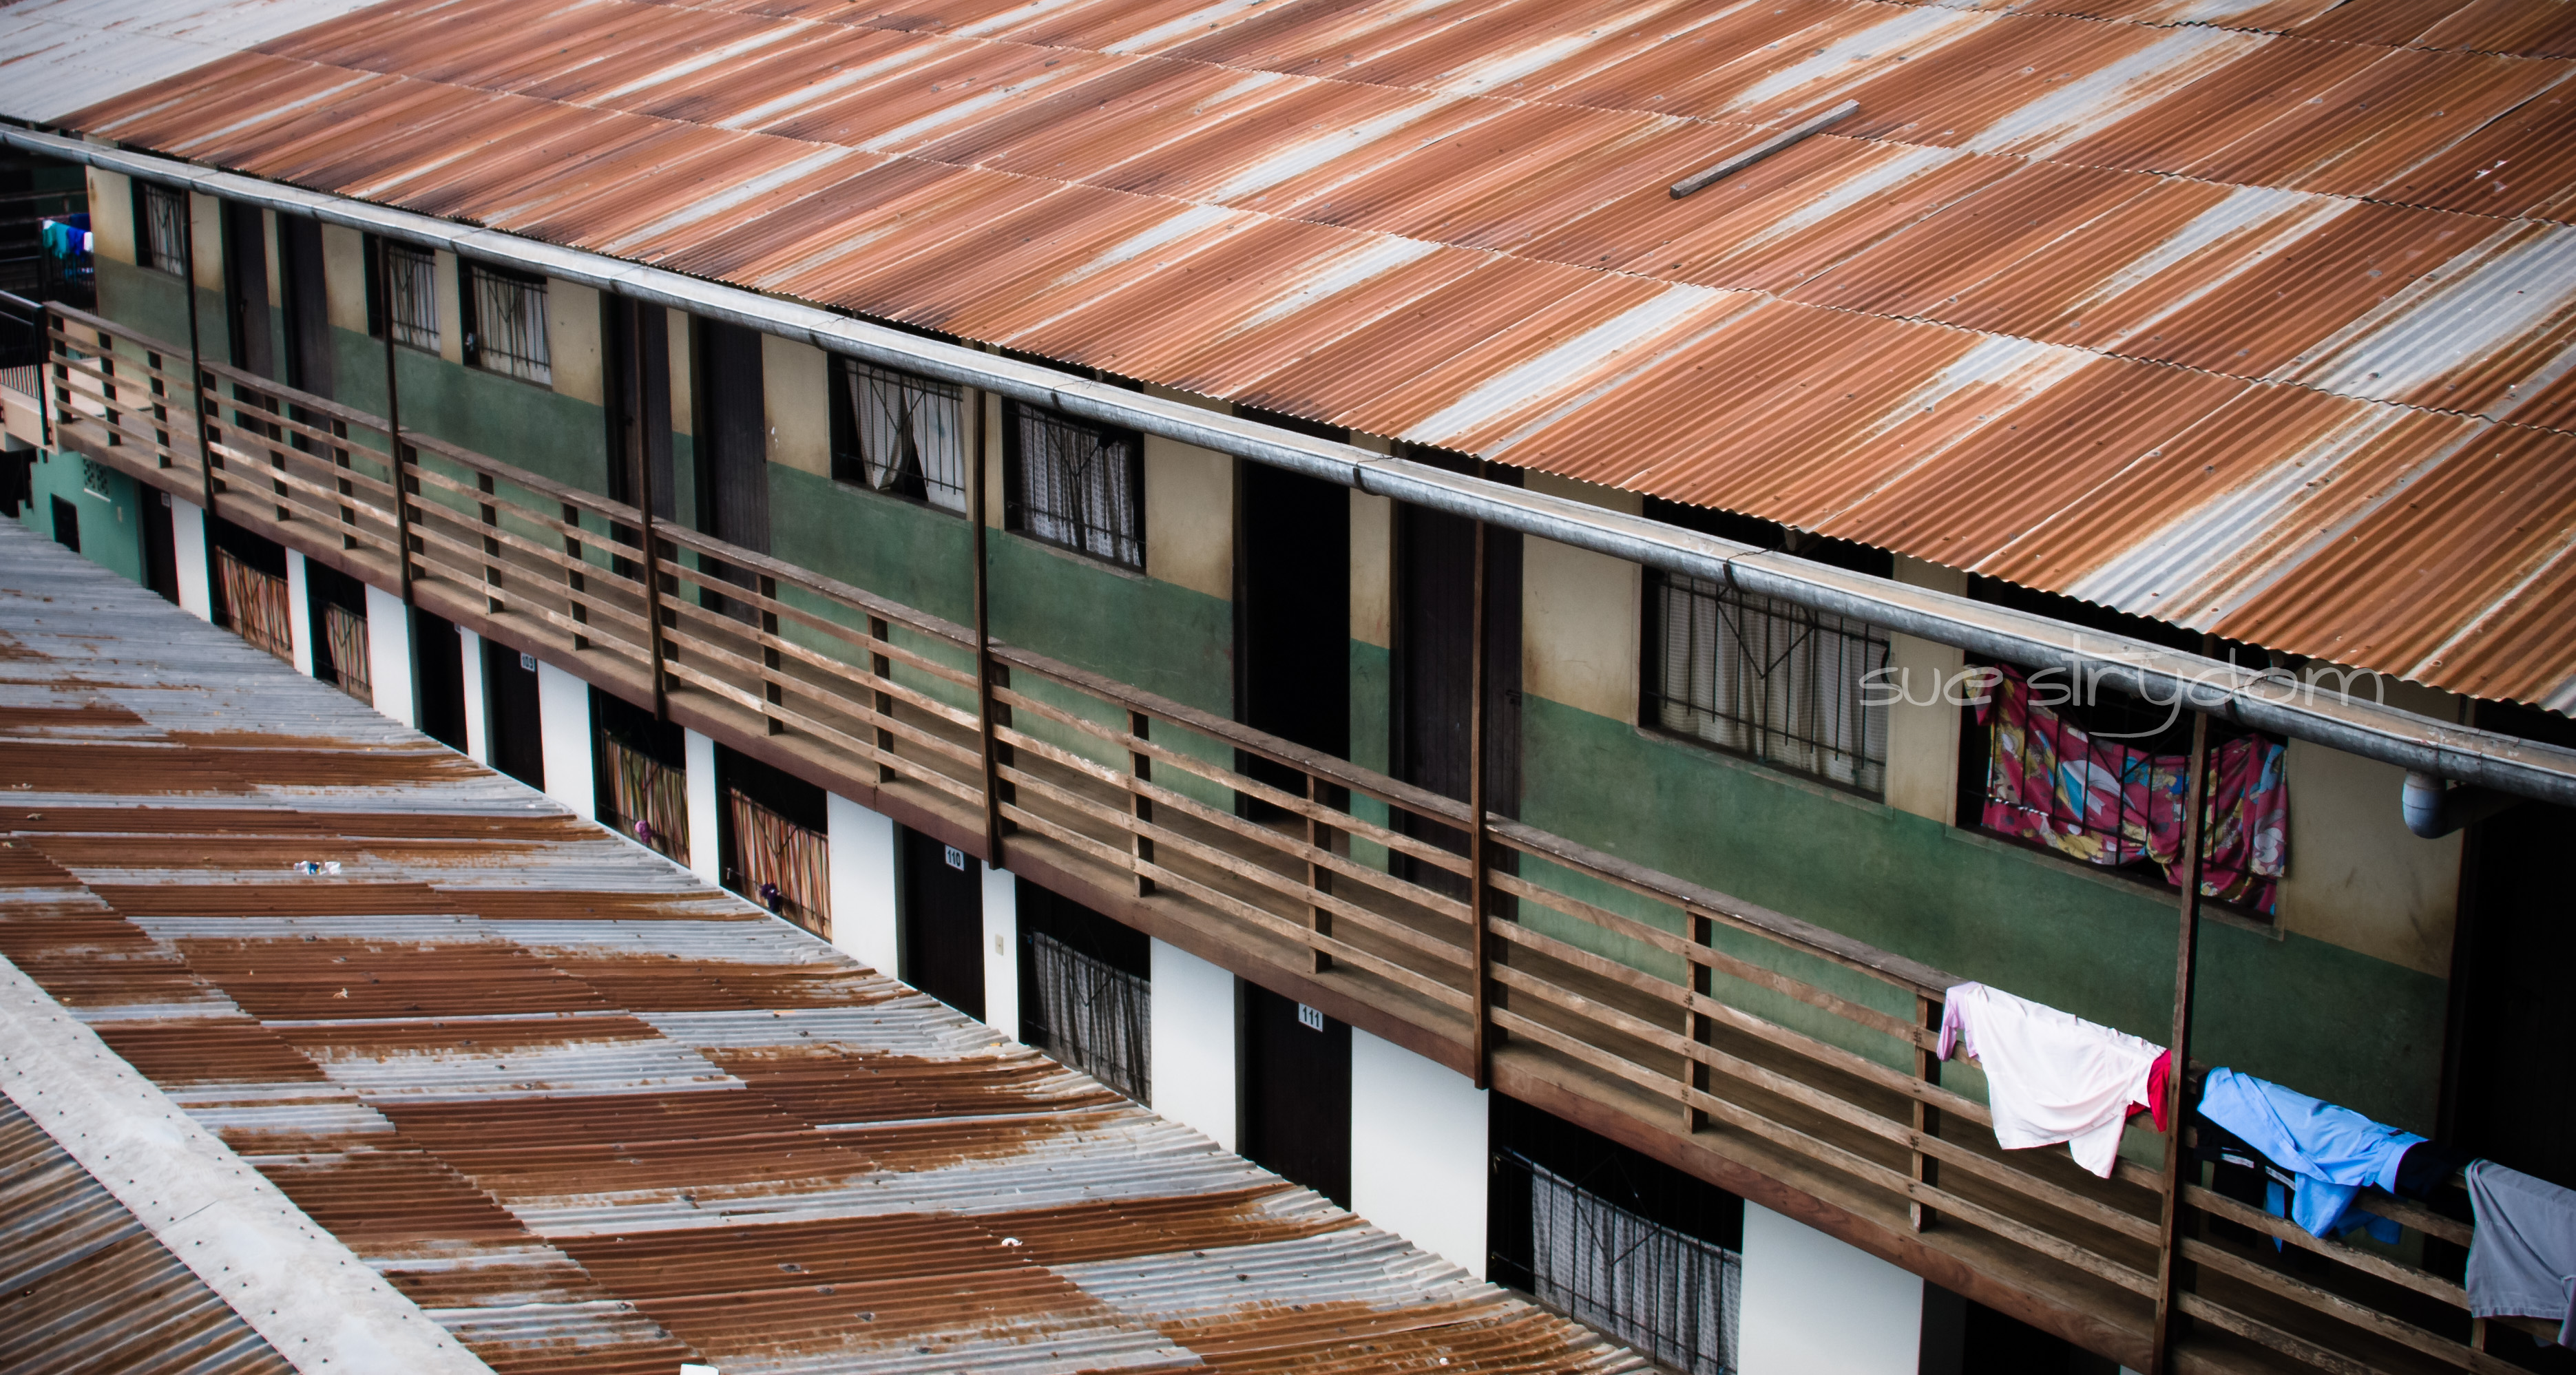 A view from above of one of the buildings where families stay. Each door and window represents one room that could house any number of family members.